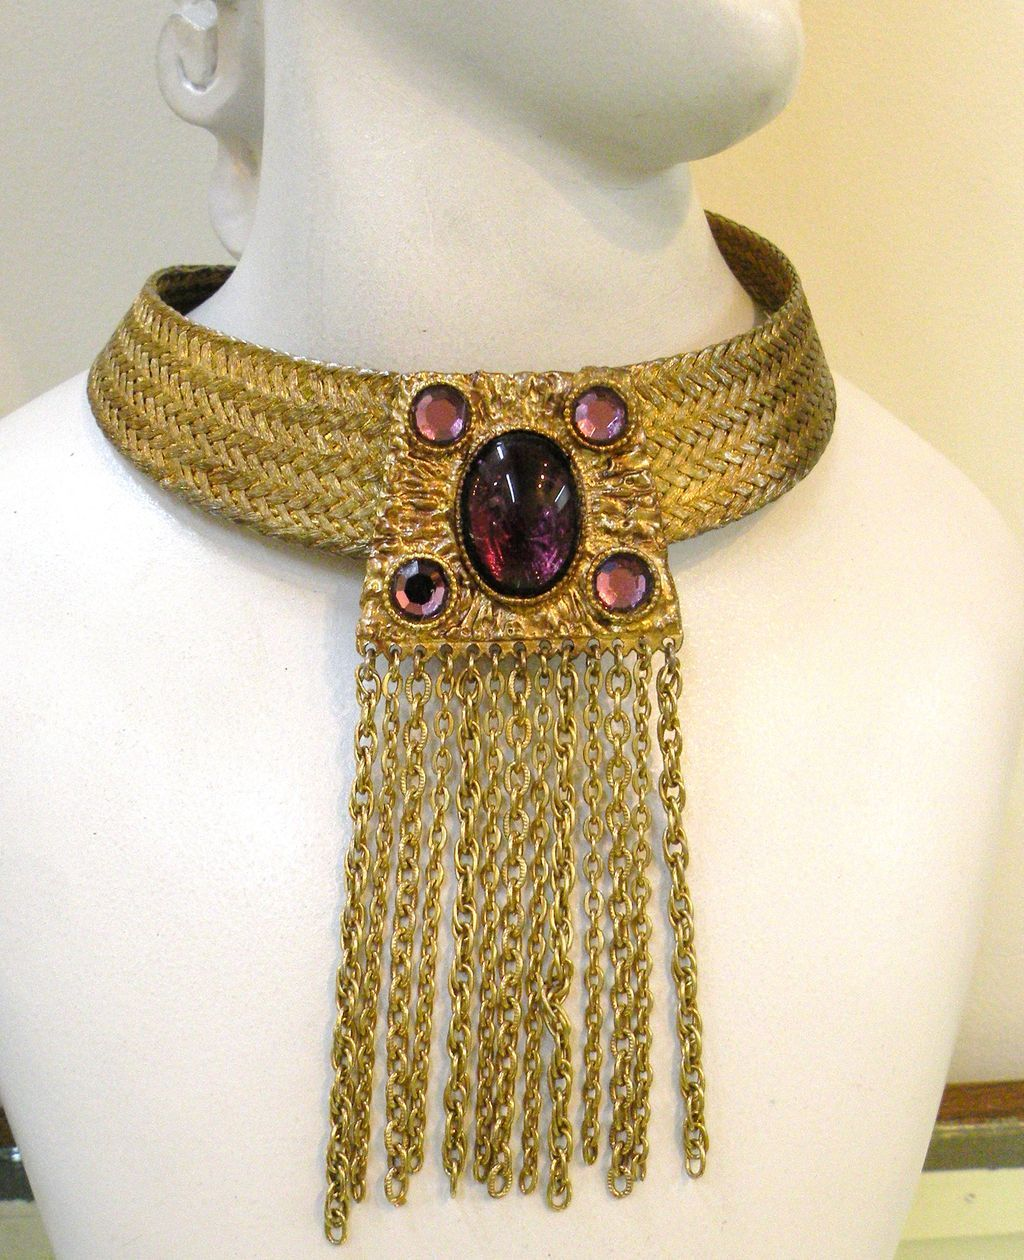 Egyptian Revival Woven Mesh Collar with Fringed Purple Drop Center